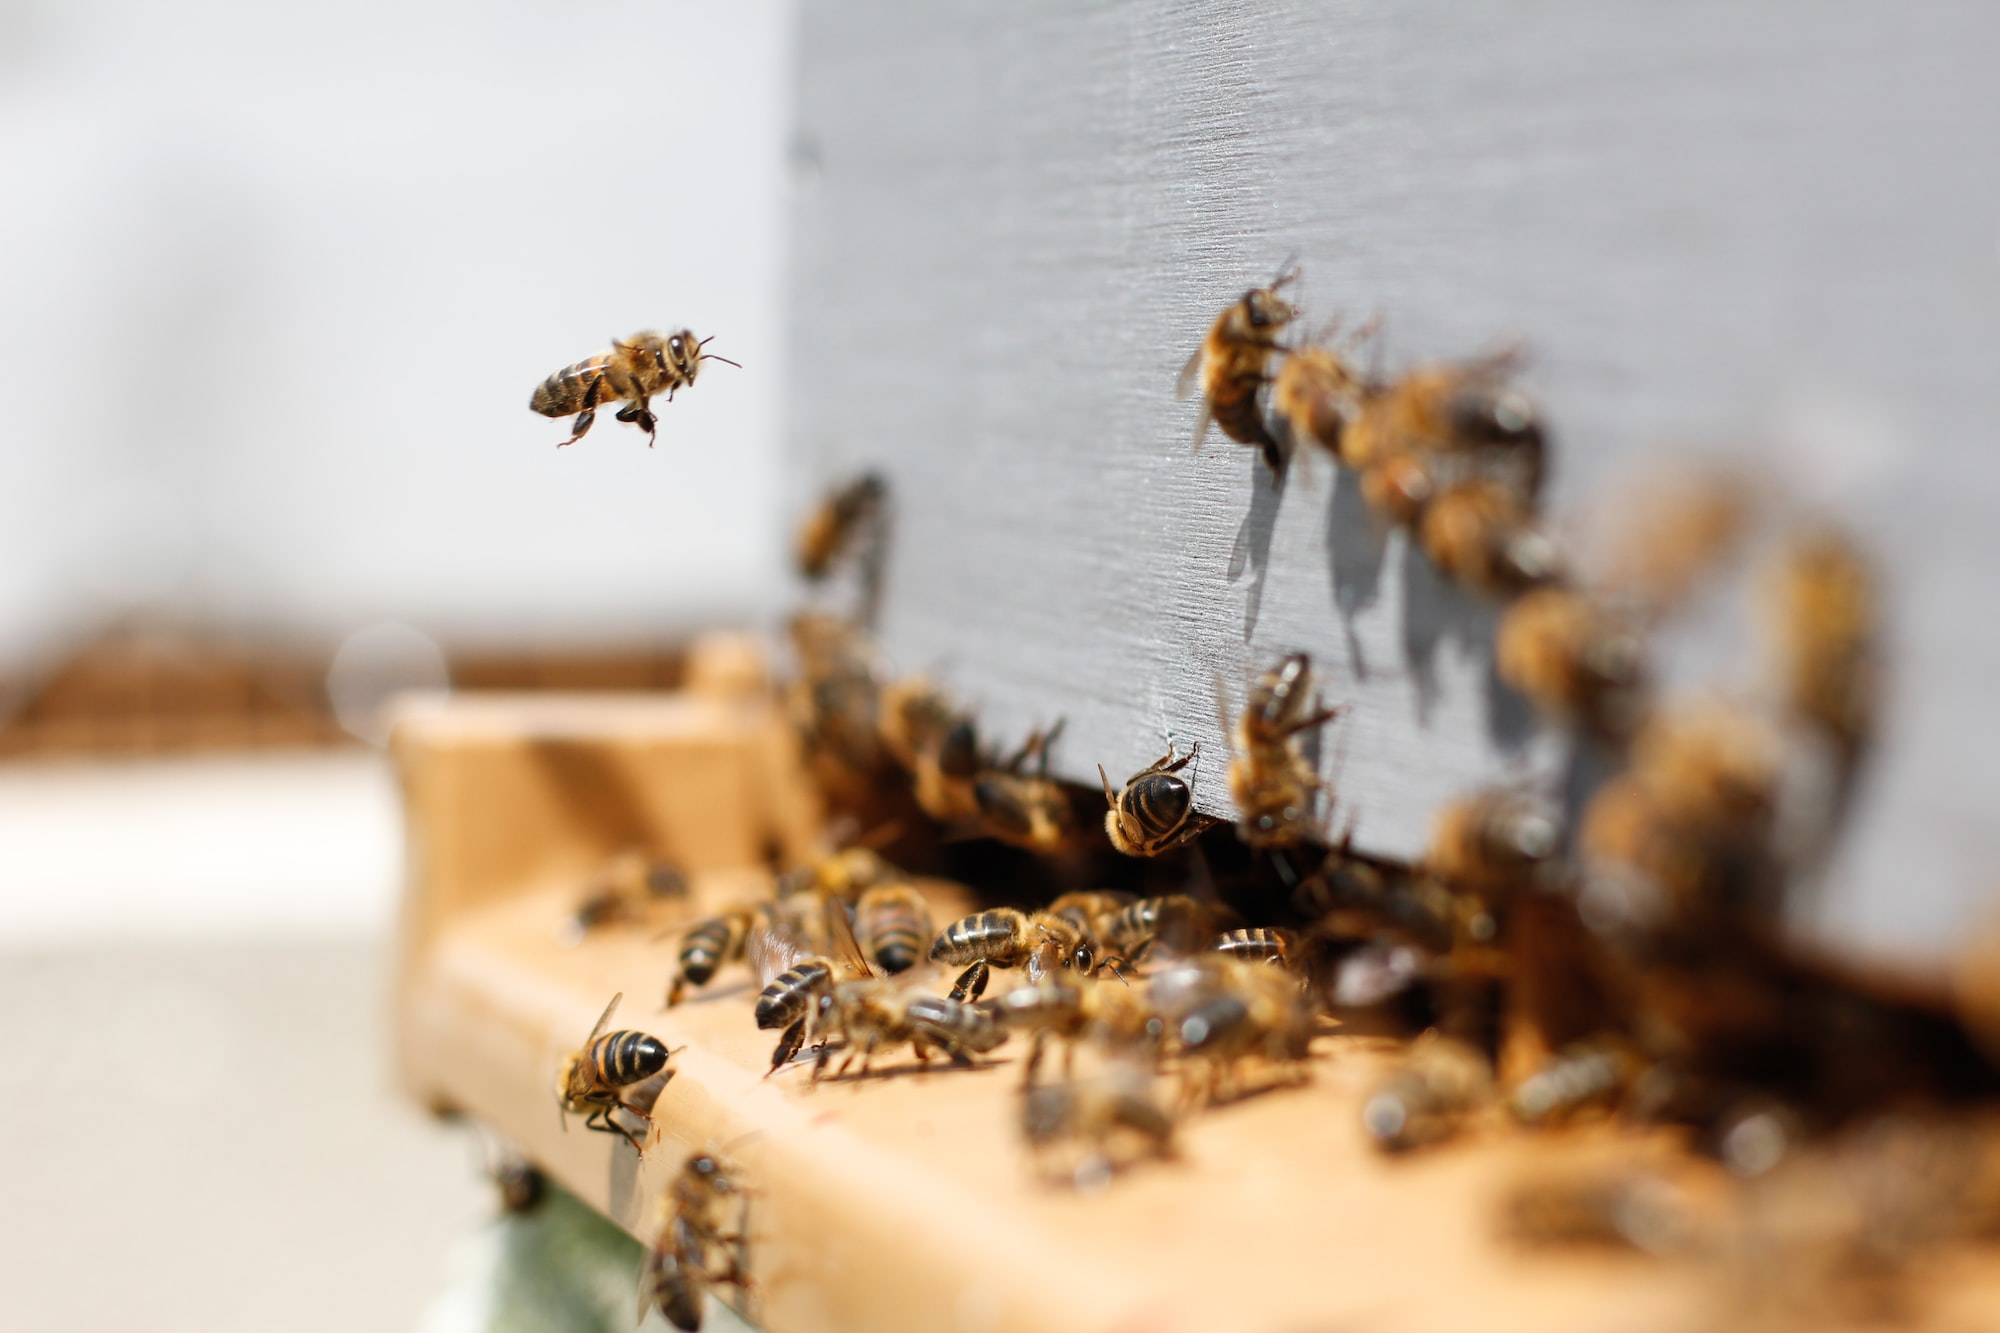 A swarm of bees surround a bee box.